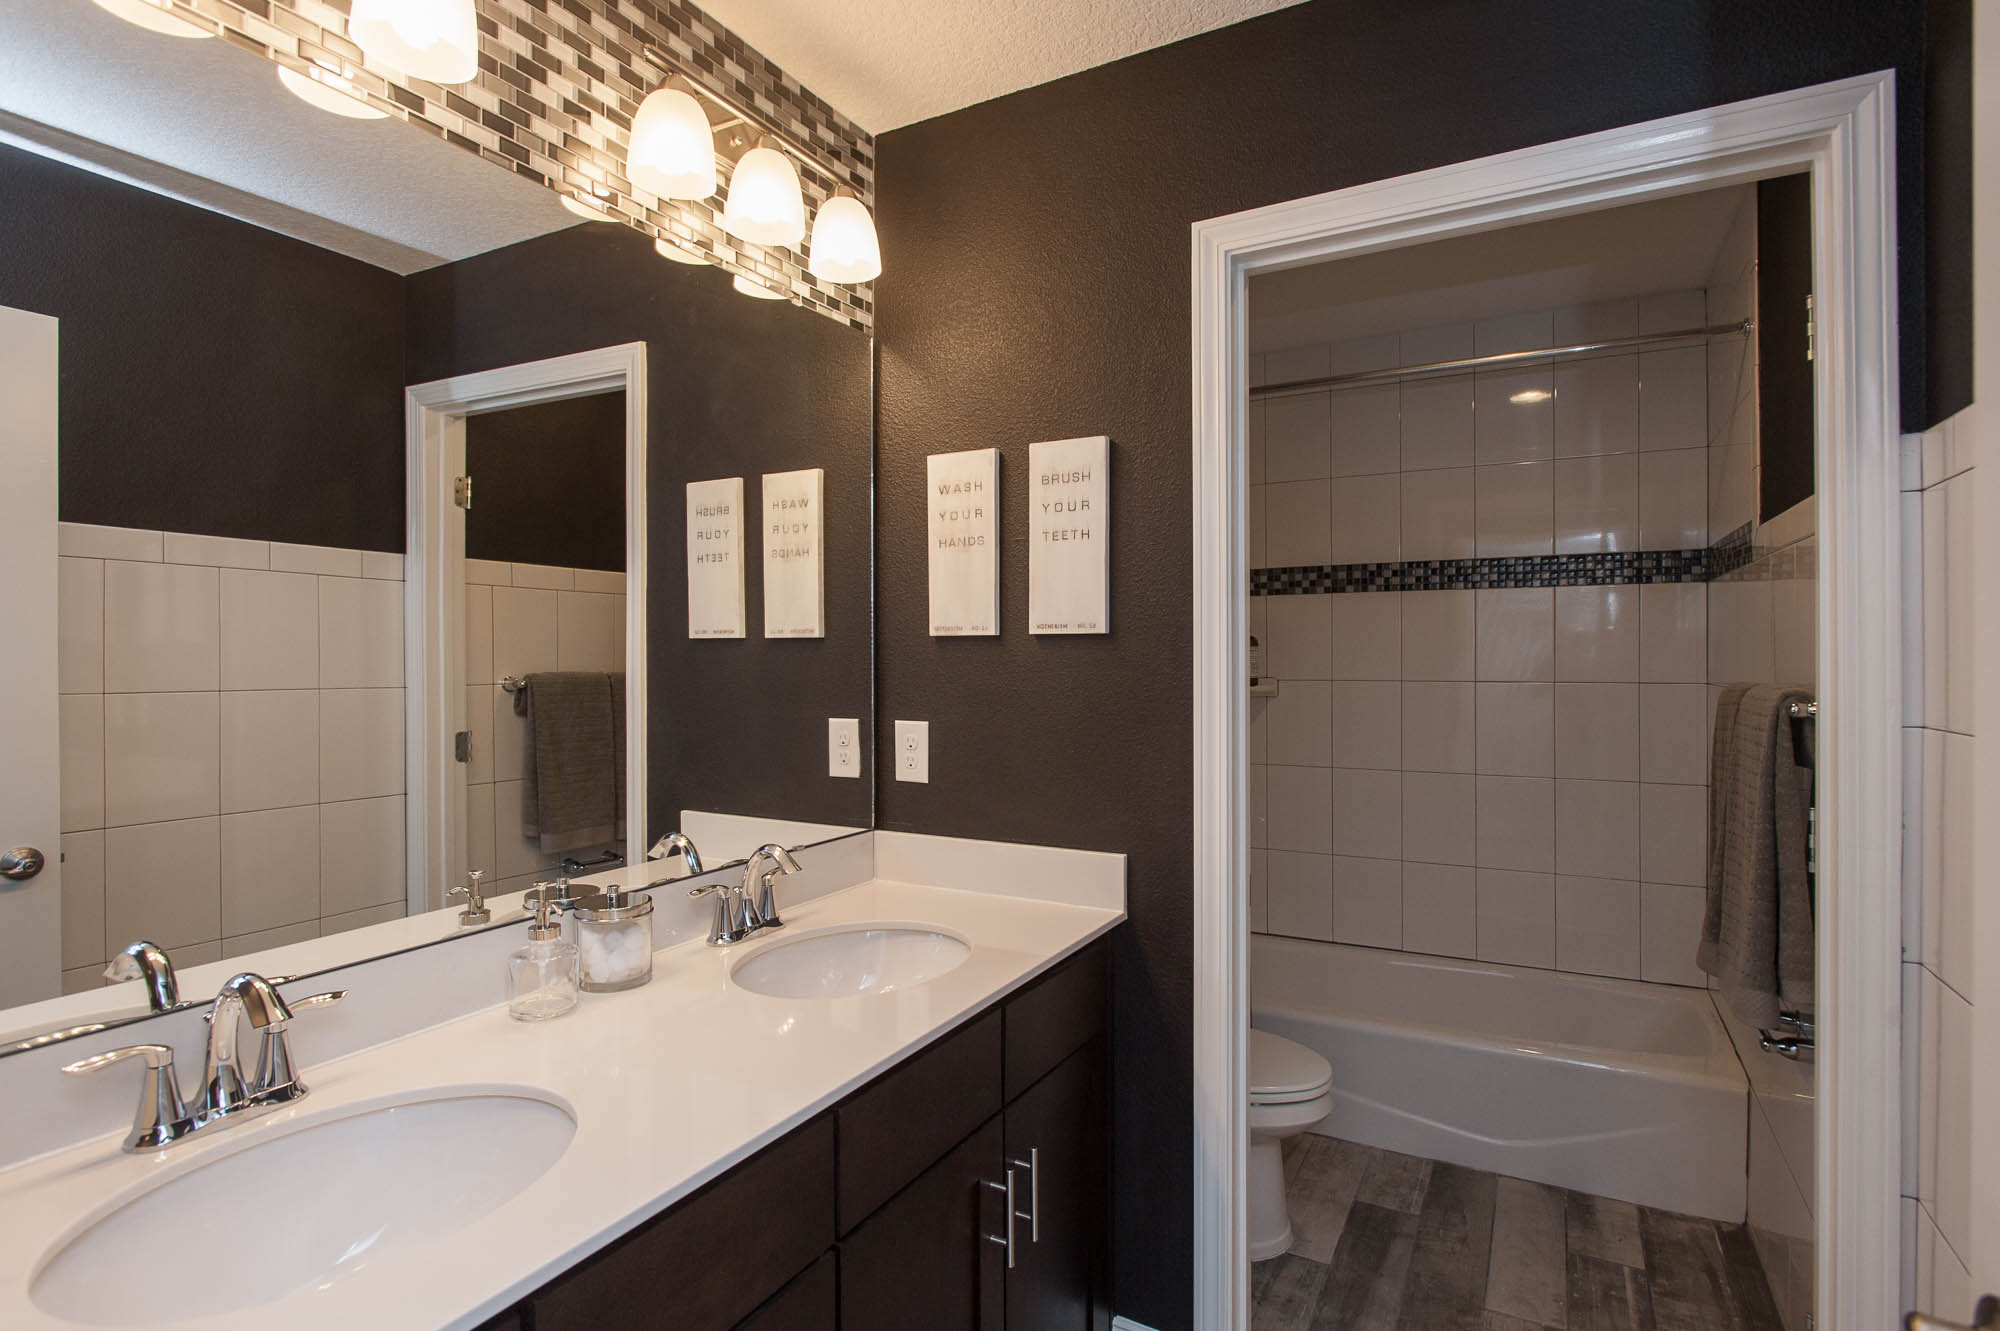 dayton-dr-horton-dr horton-st johns-jacksonville-florida-nefba-northeast florida-southeastern united states-residential interior design-transitional-bathroom-double vanity-shower-white tile-.jpg